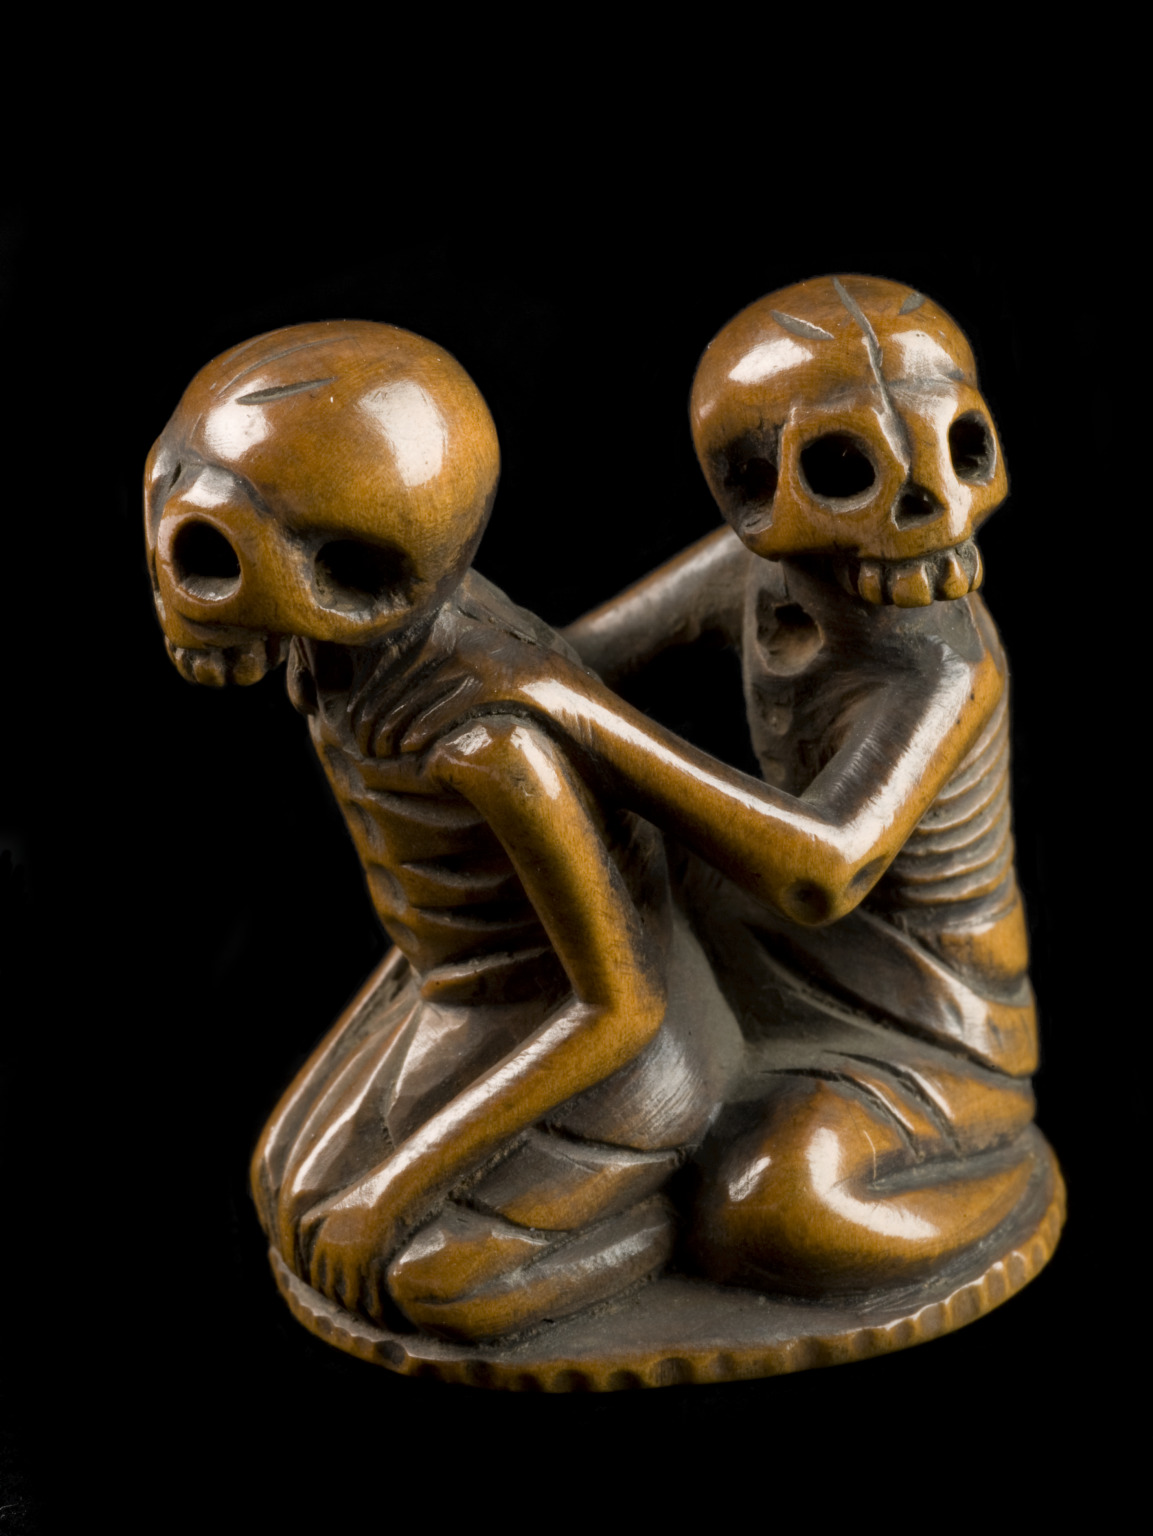 Netsuke in form of seated skeletons  Skeletons often appear in netsuke. They are sometimes in quite comic poses. This tiny wooden netsuke is in the form of two seated skeletons. The one behind has his hands on the other's shoulders. The meaning of the imagery is uncertain. The netsuke was made in Japan. Netsuke are toggle-like ornaments. They hang objects such as medicine boxes or tobacco pouches from the sash of a kimono – a traditional form of Japanese dress. Netsuke carving is a form of miniature sculpture which developed in Japan over several hundred years. They were often beautifully decorated with elaborate carving, lacquer work, or inlays and were usually made from wood, ivory or porcelain.